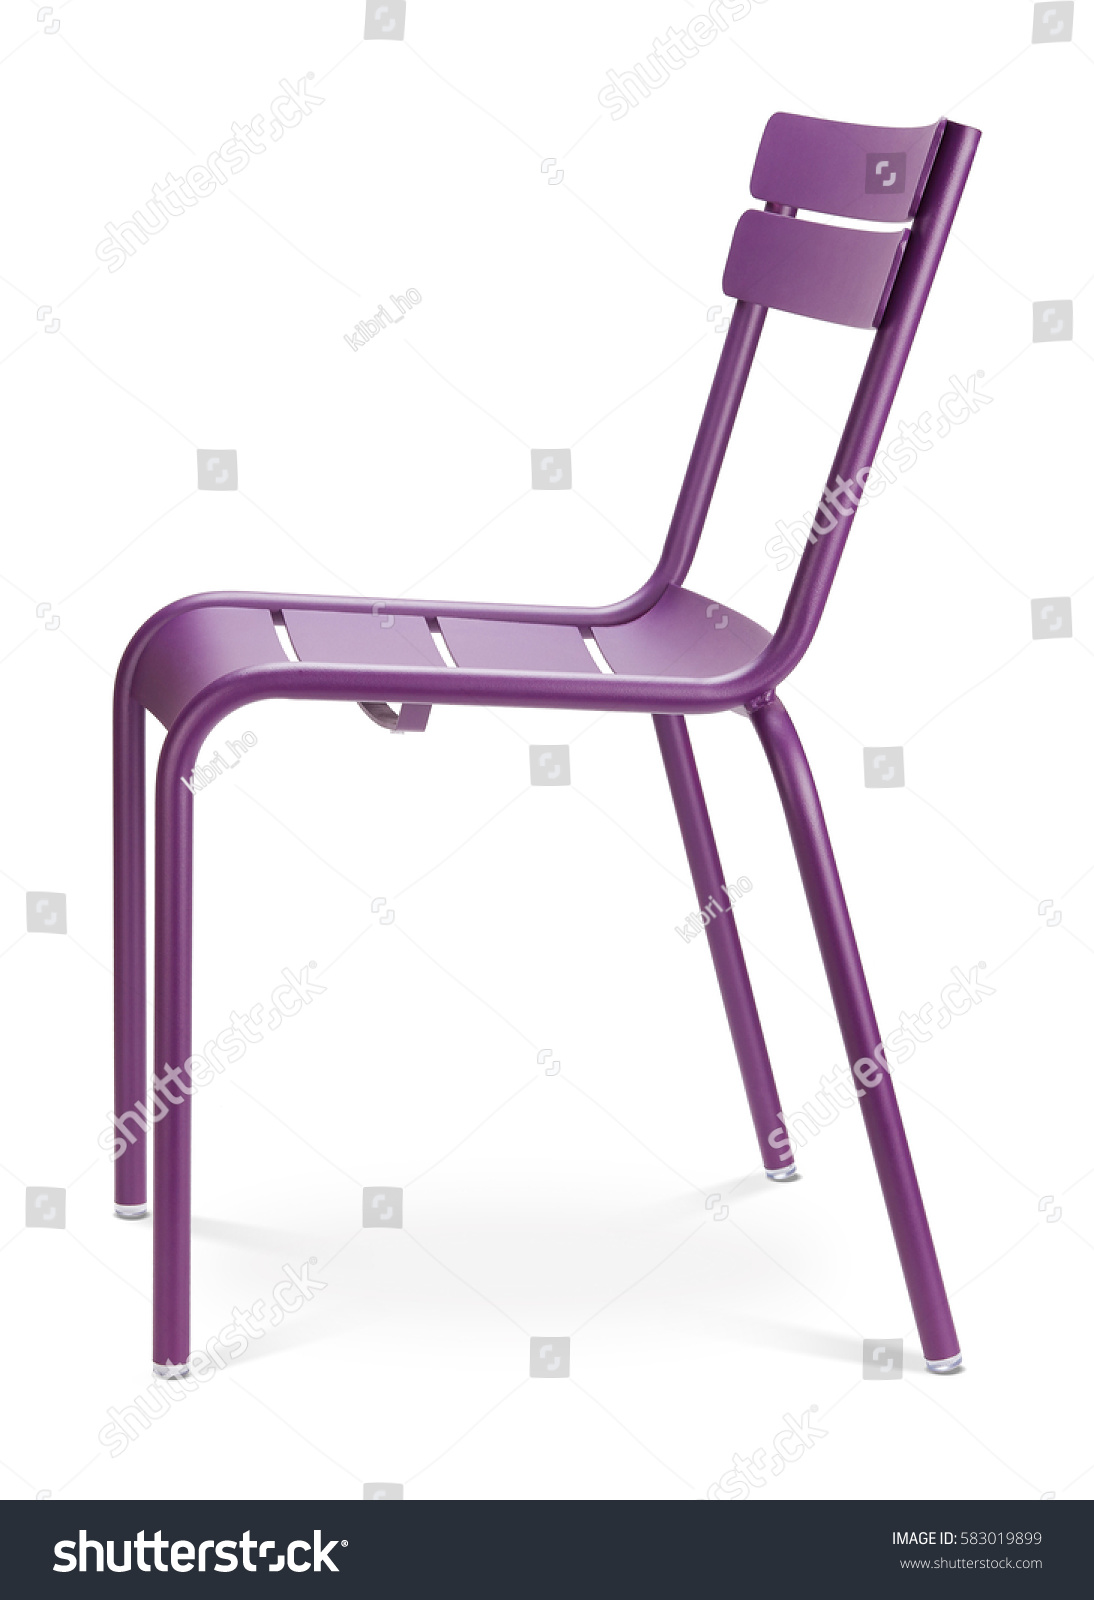 plastic metal chairs. Violet, Purple Color Chair, Plastic, Metal Modern Designer. Chair Isolated Plastic Chairs .